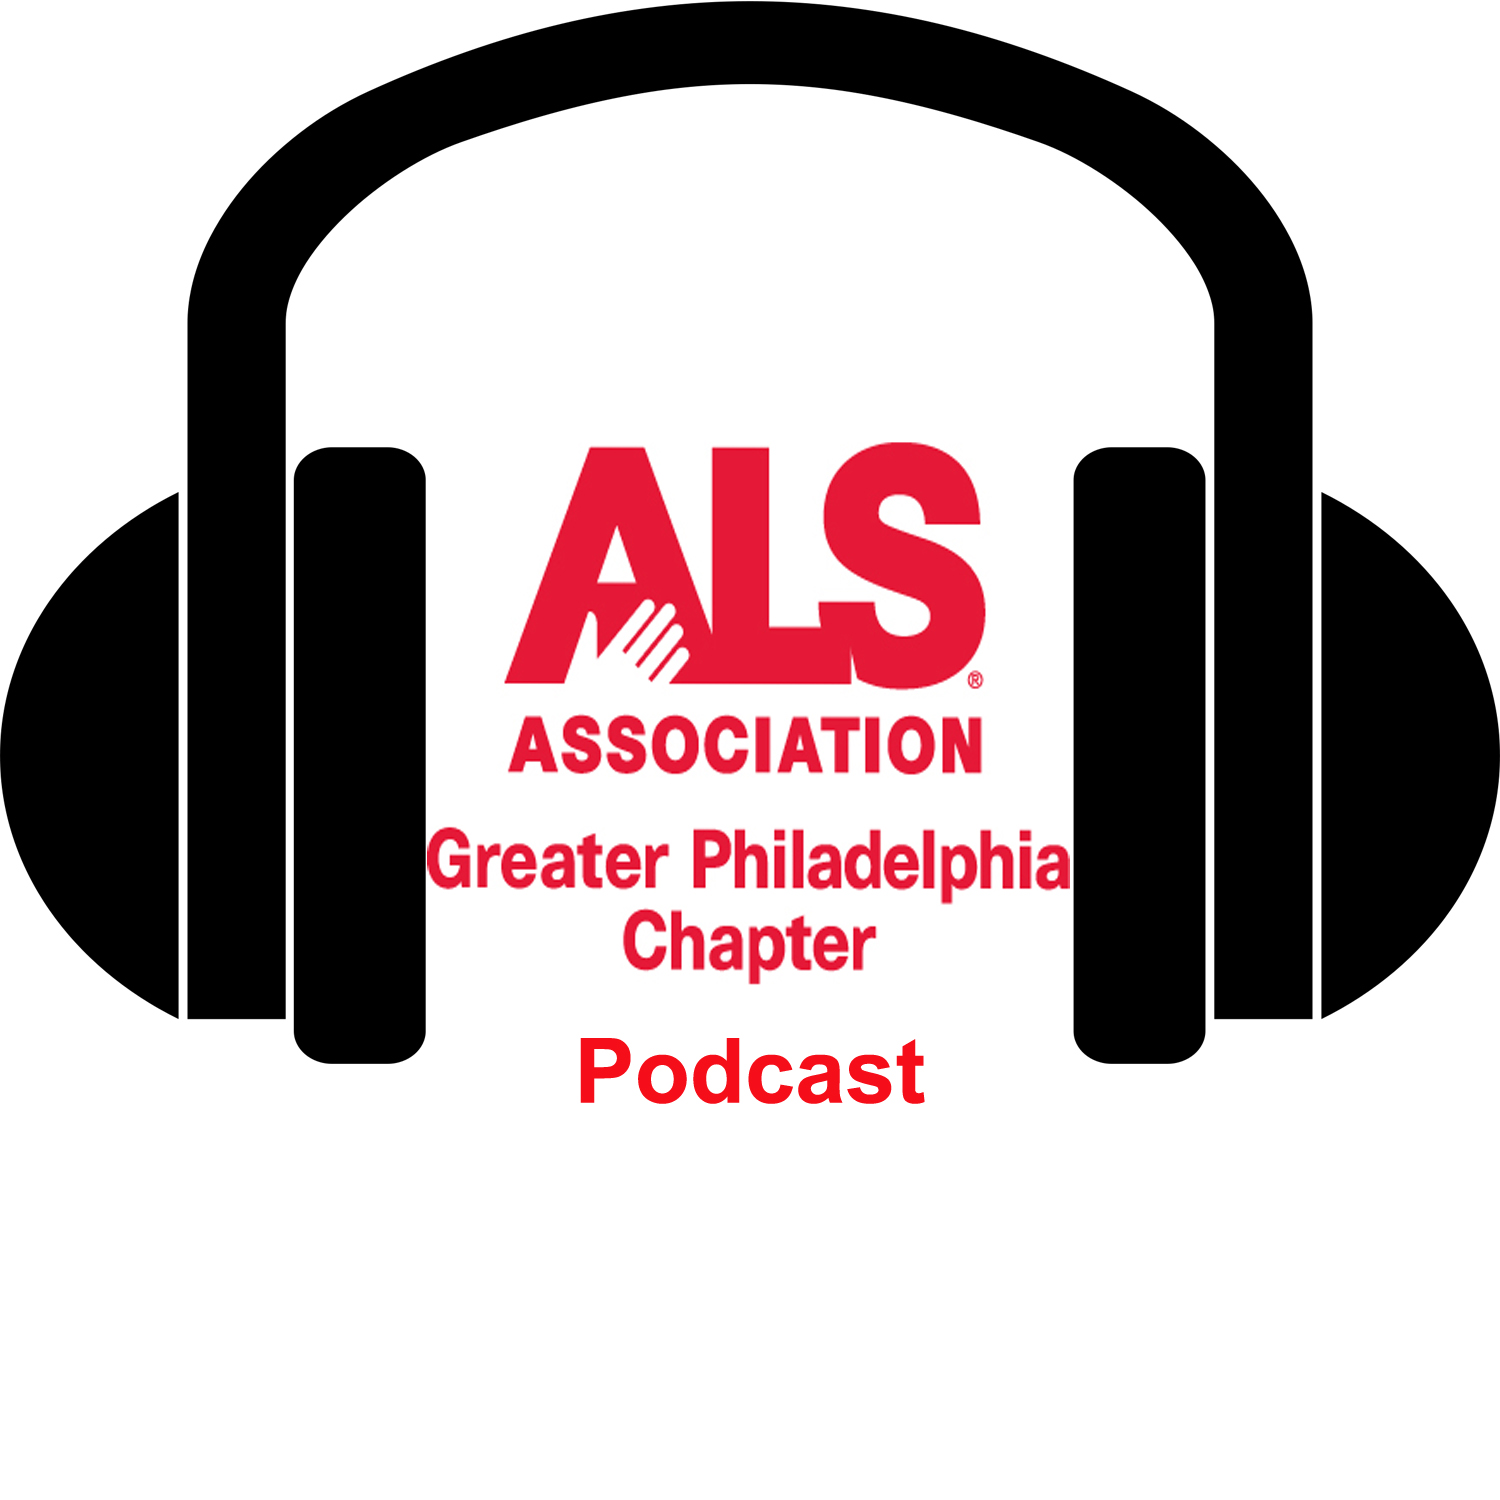 Episode 76 - ALS Registry with Melissa Coll